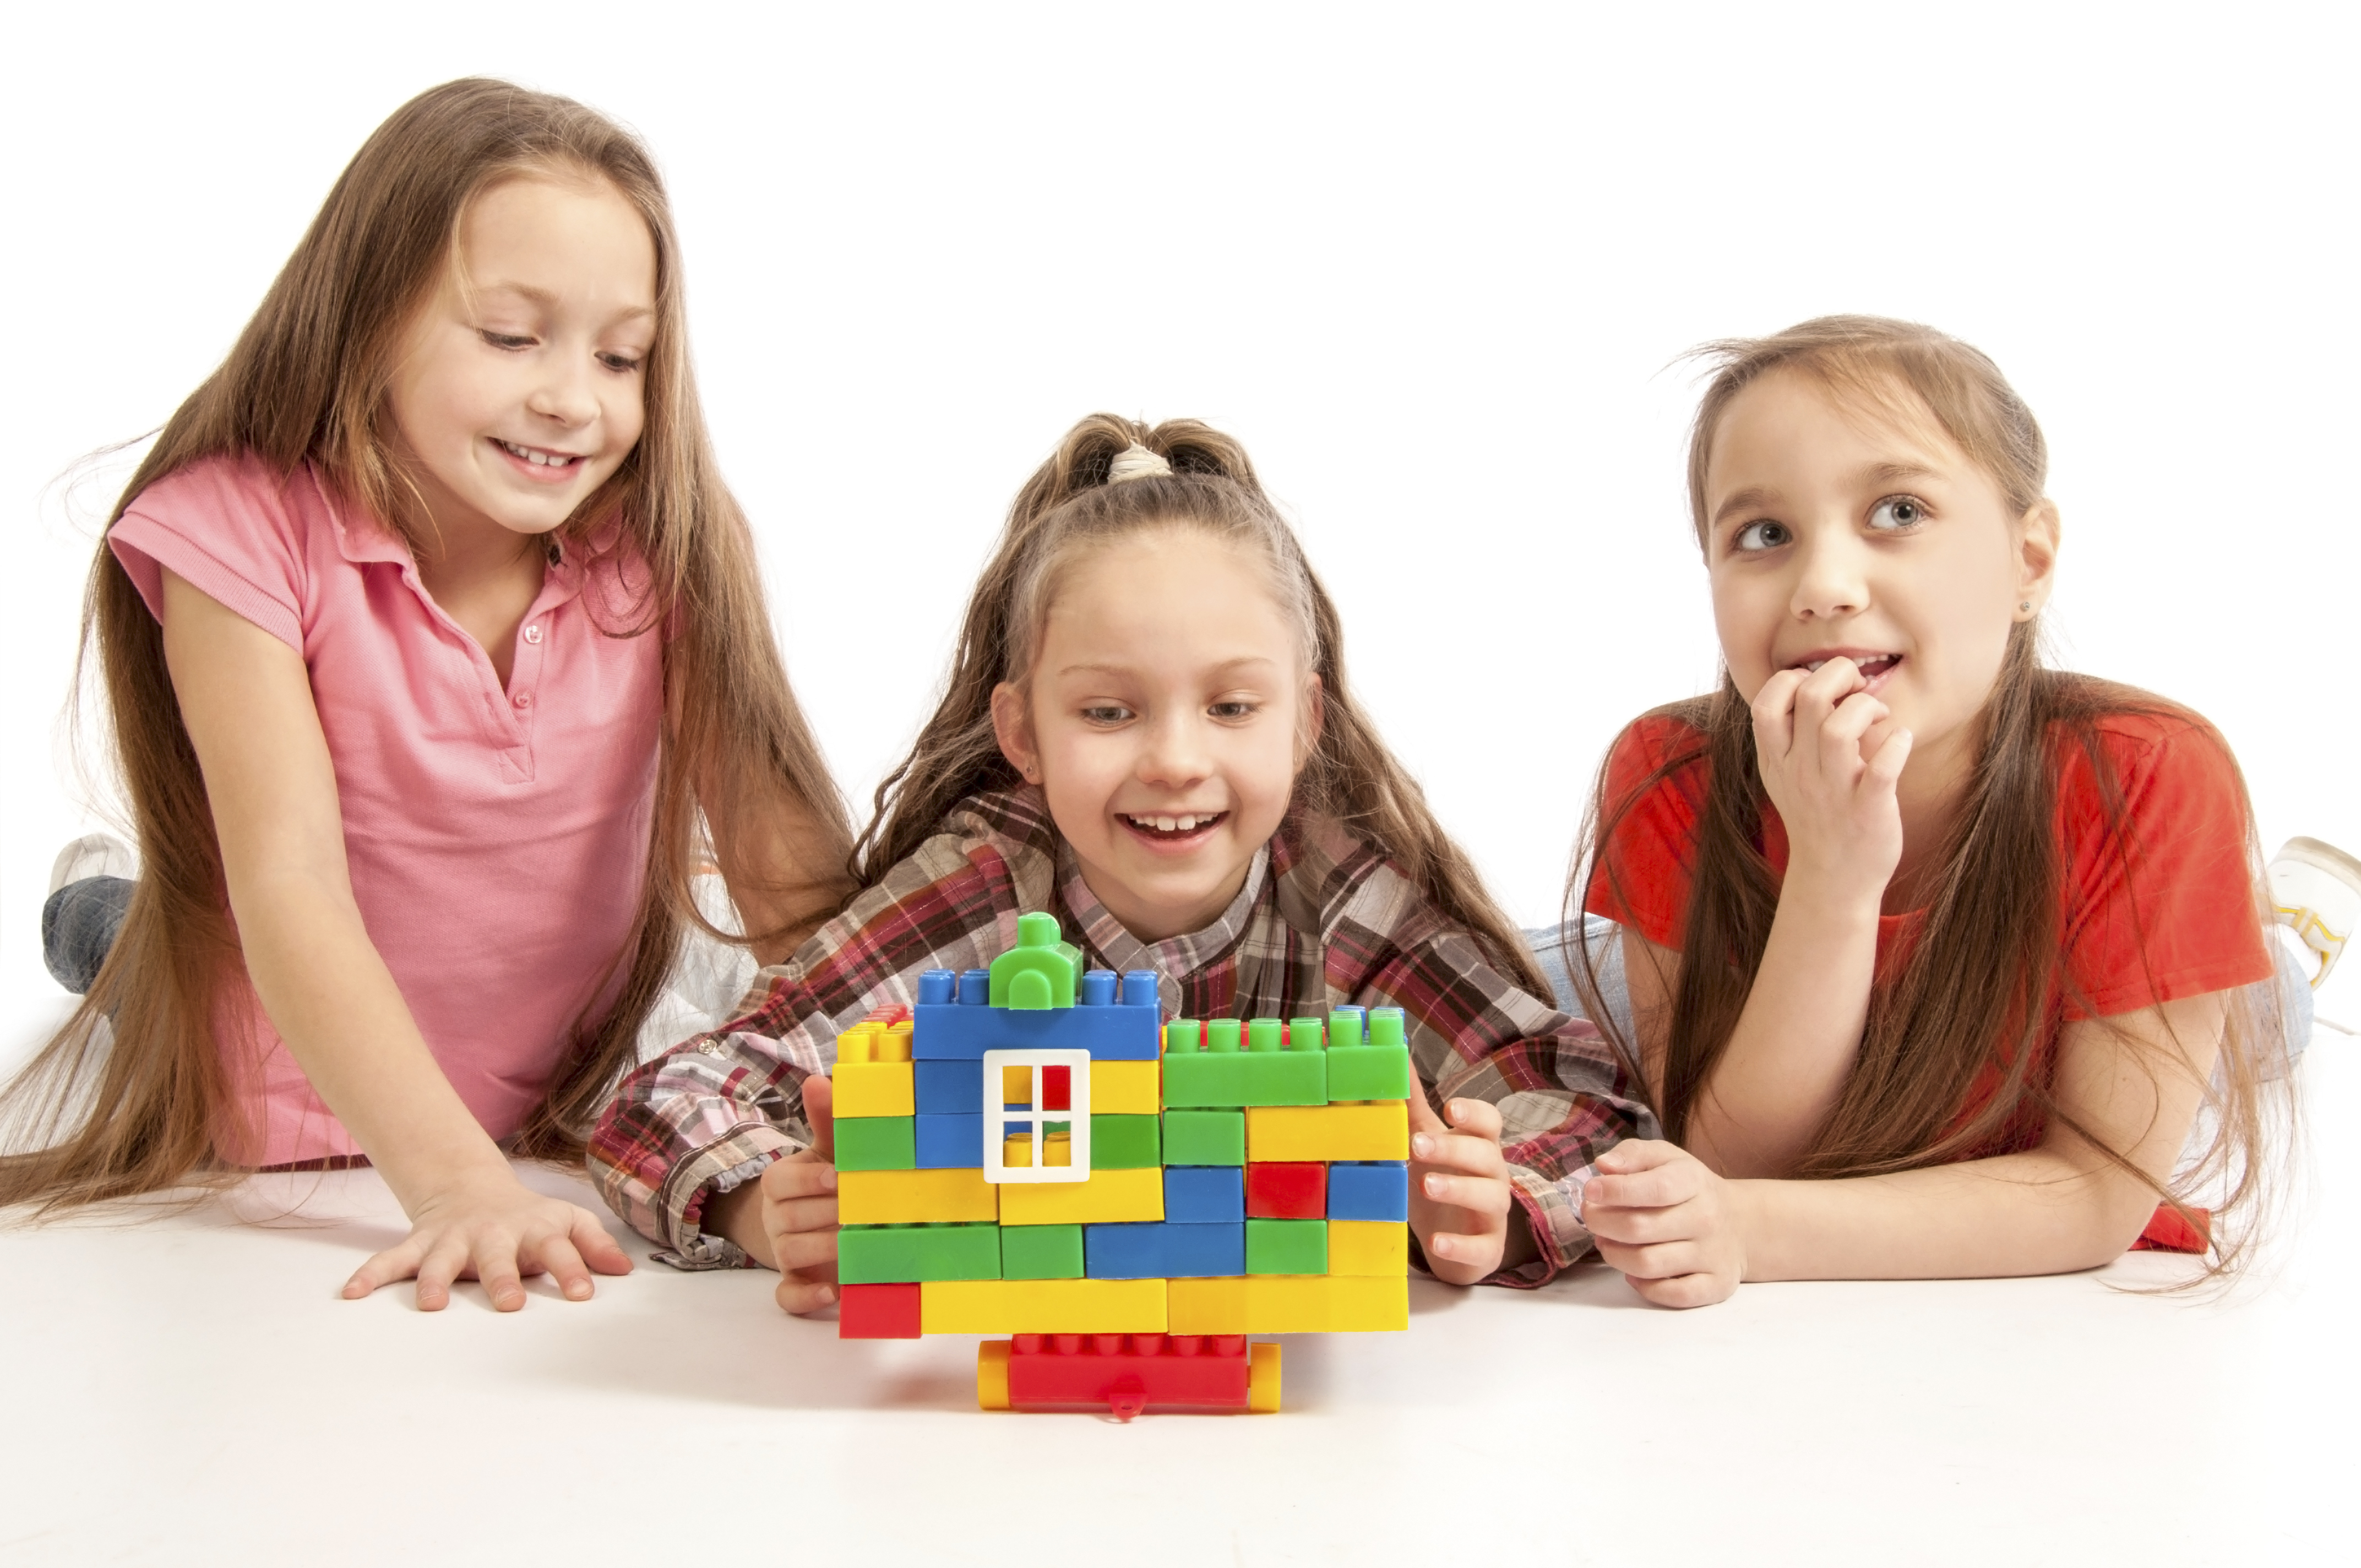 Three girls playing with Legos